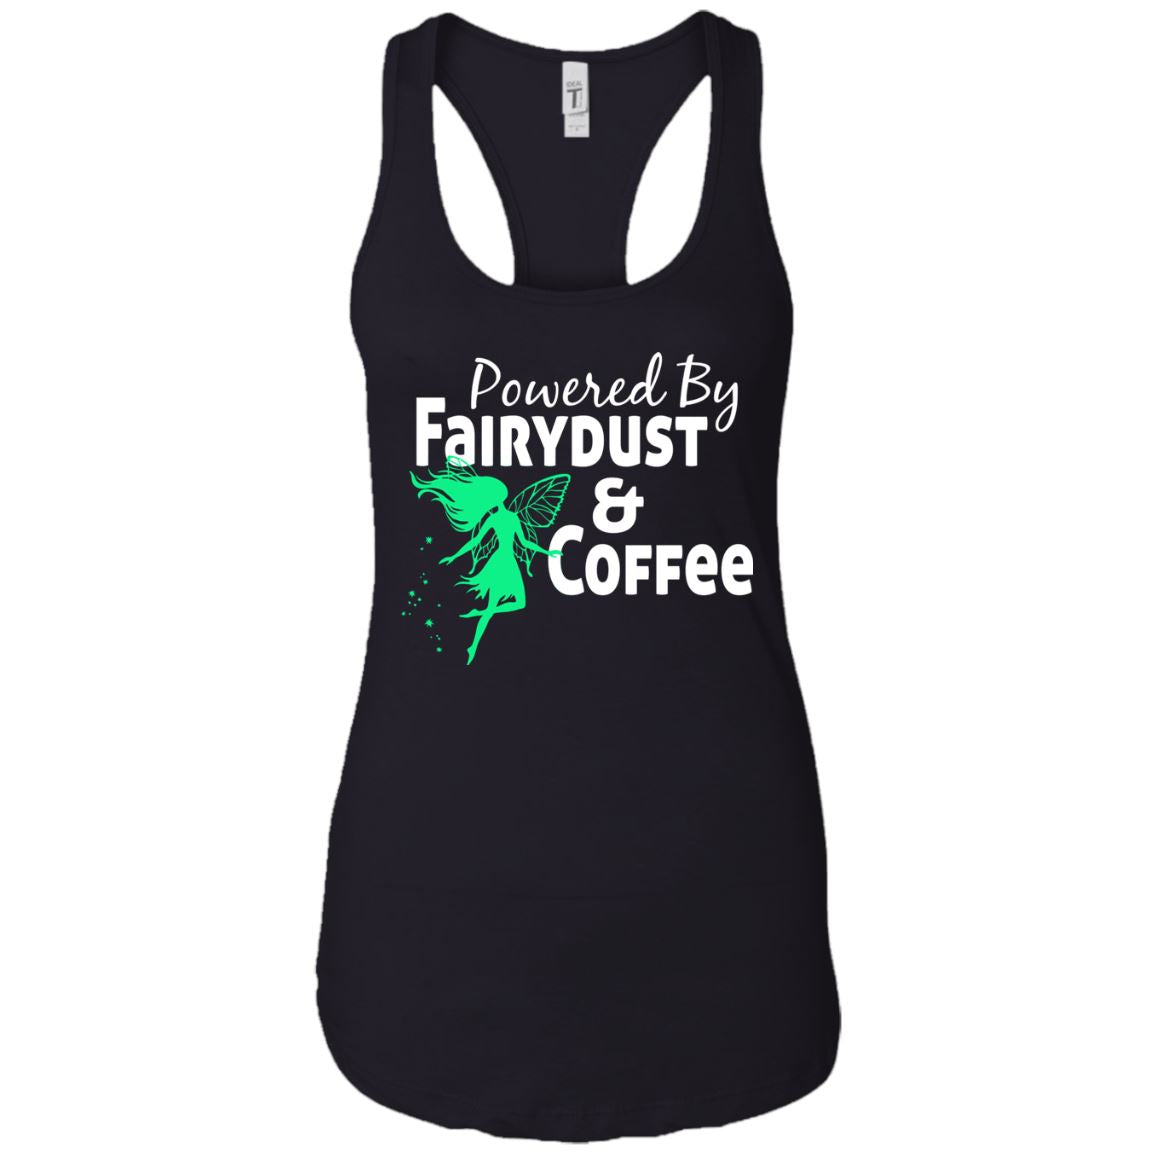 Powered By Fairydust & Coffee Racerback Tank T-Shirts Black X-Small